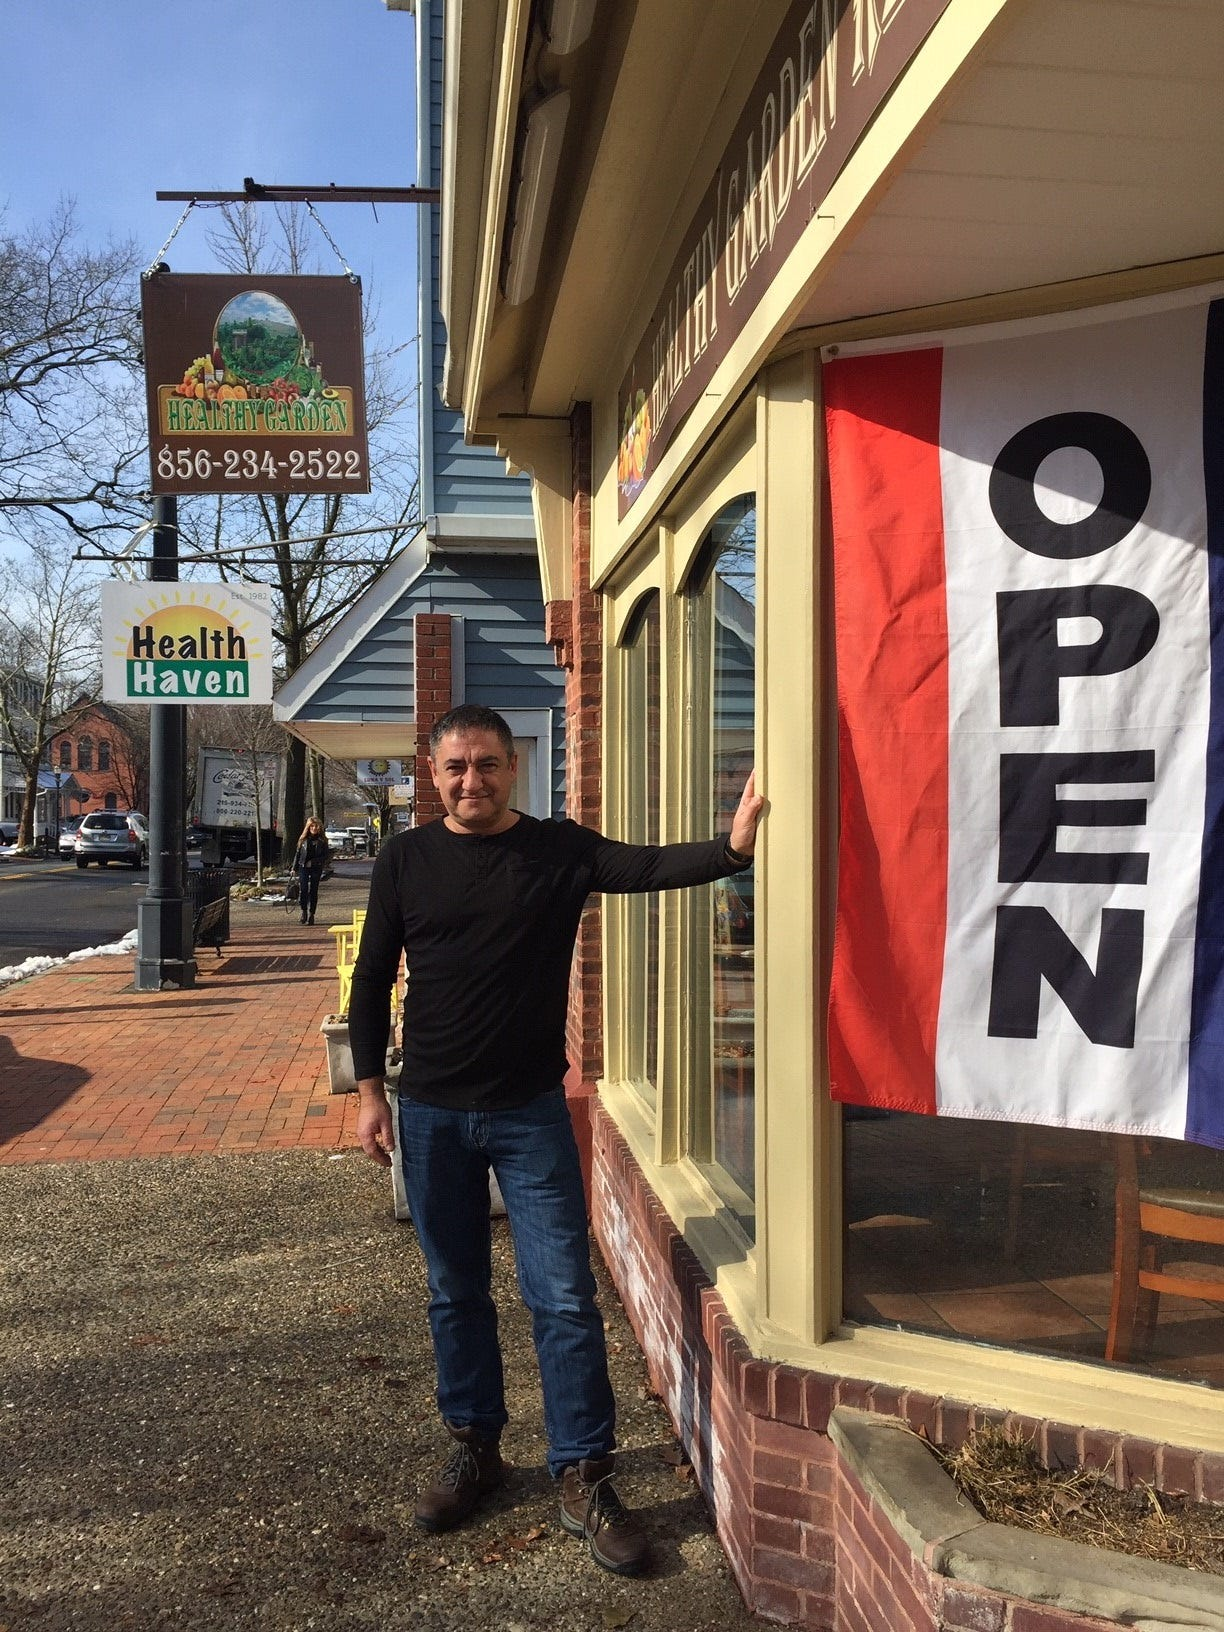 Healthy Garden Cafe Hopes To Come To Collingswood